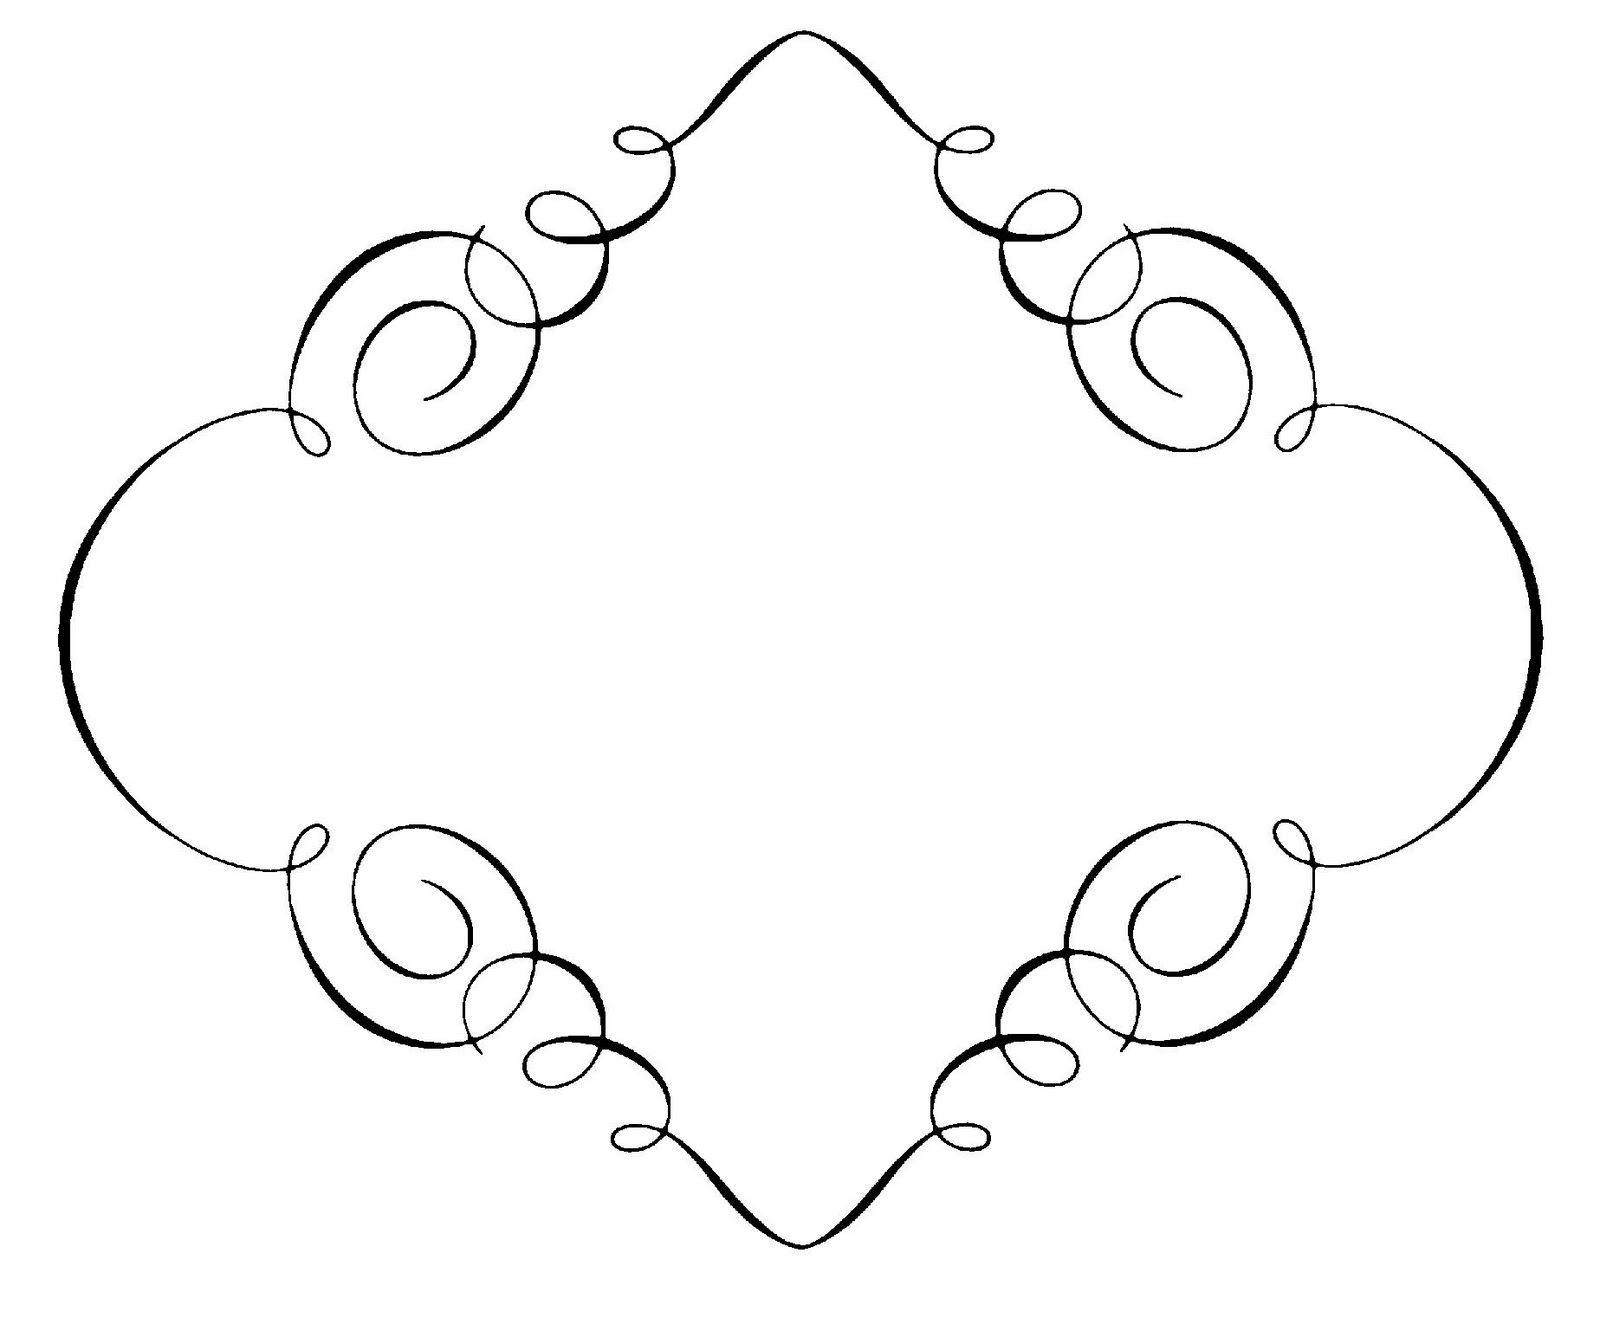 Vintage Frames And Borders Free Clip Art Borders Lines Free Clip Art Clip Art Borders Clip Art Vintage